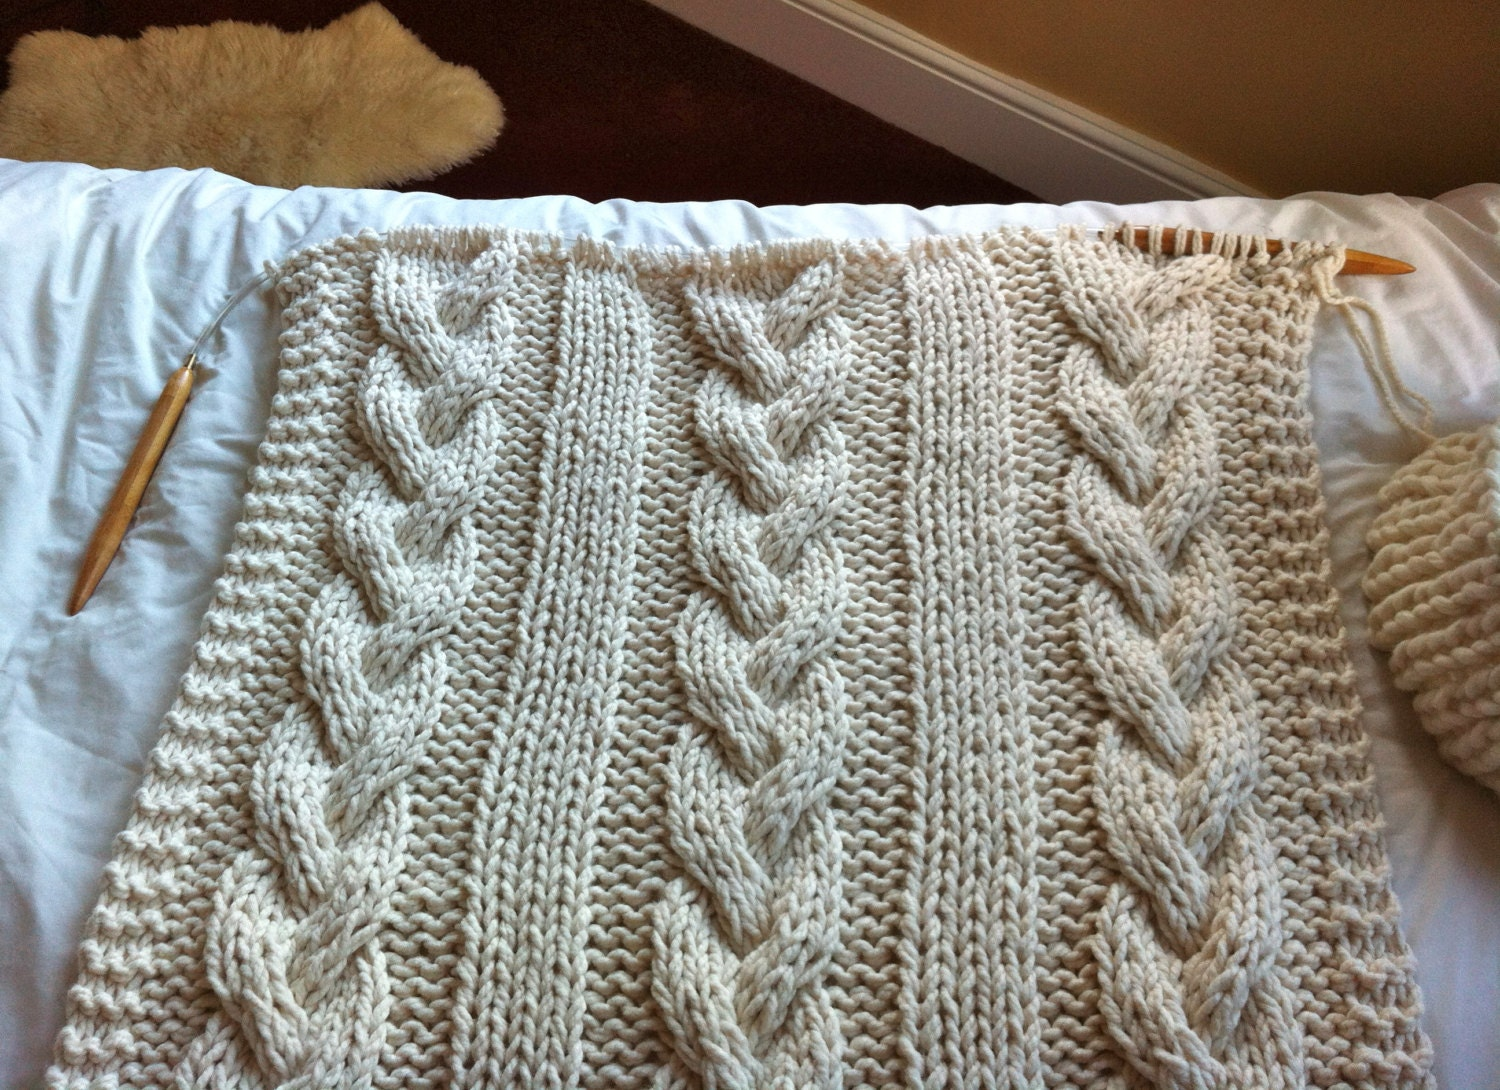 Giant Cable Knit Blanket or Throw by Knittingrev on Etsy